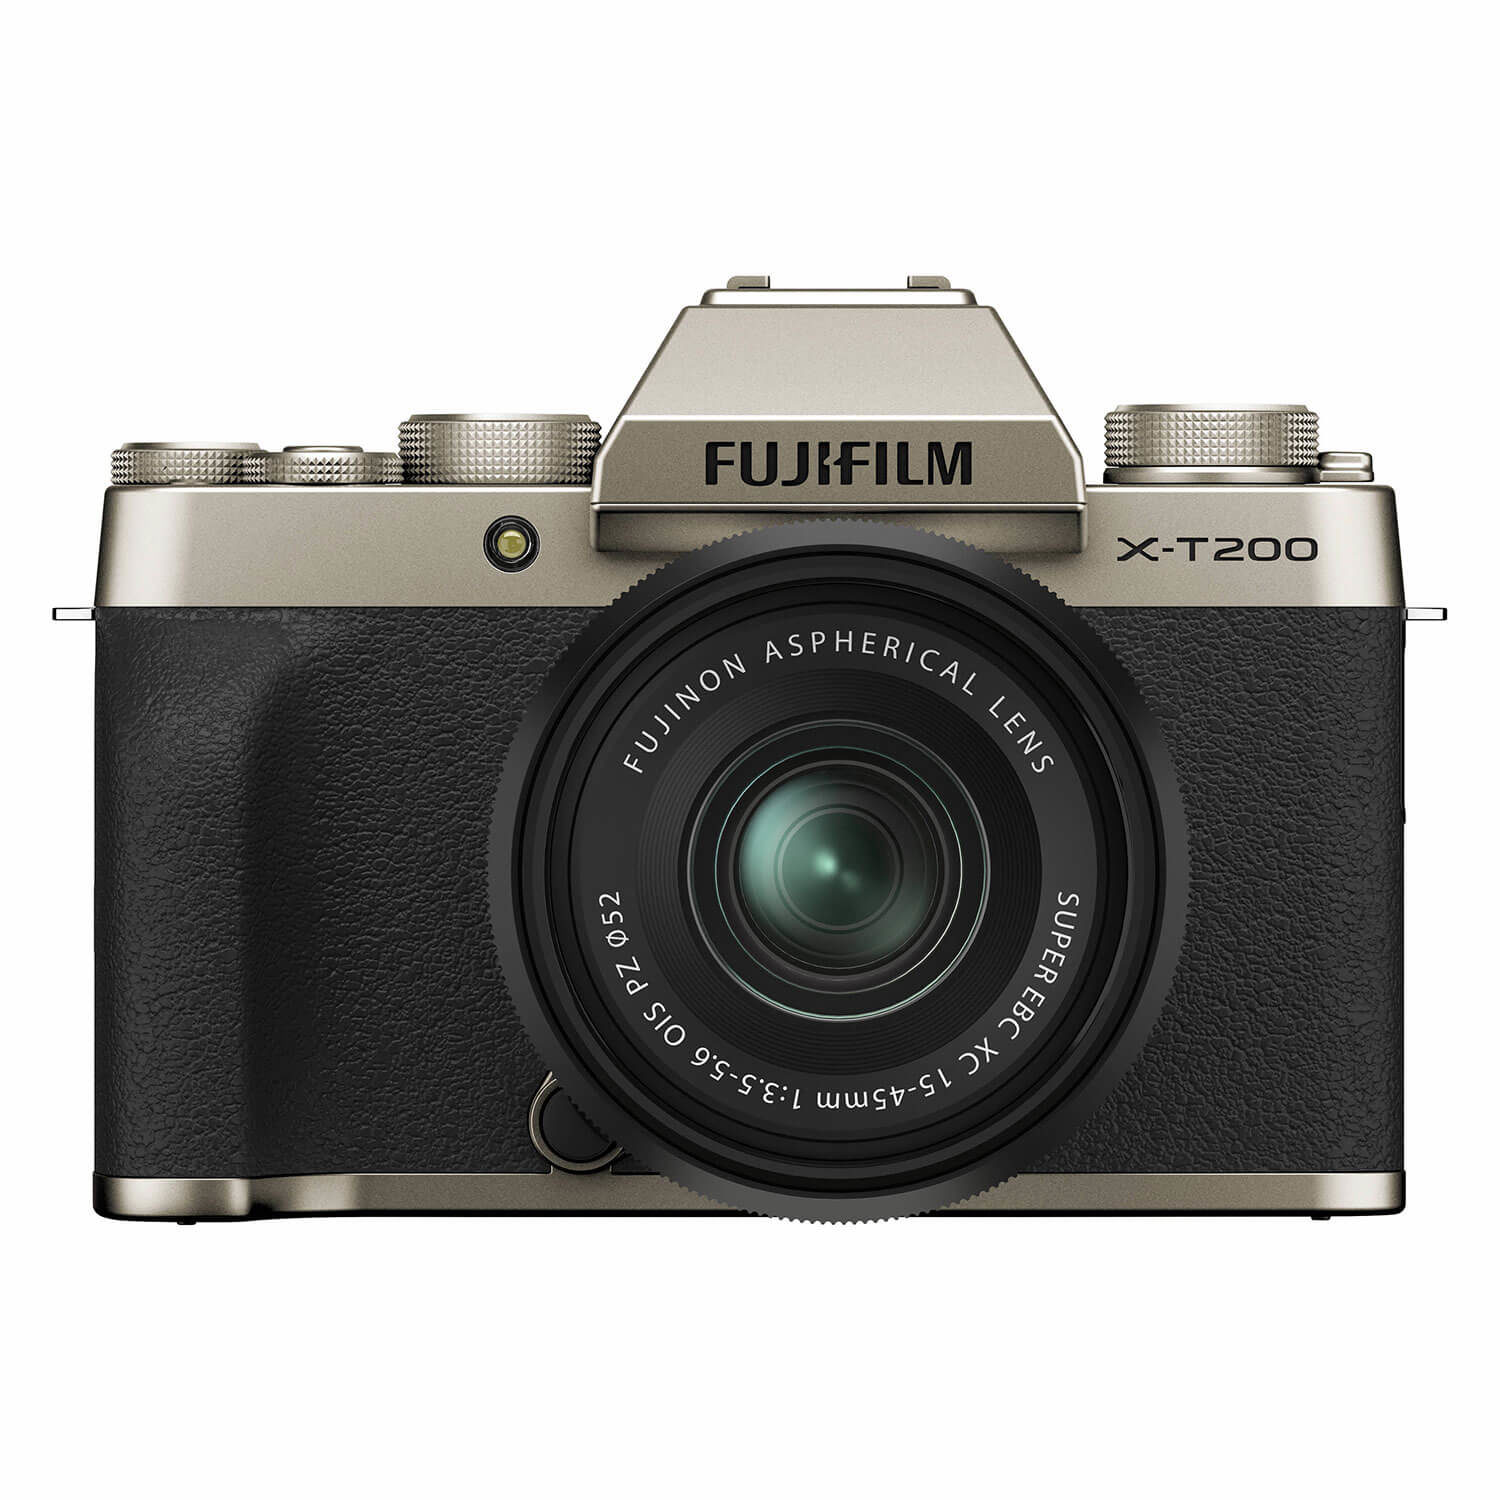 Fujifilm X-T200 systeemcamera Champagne Goud + XC 15-45mm